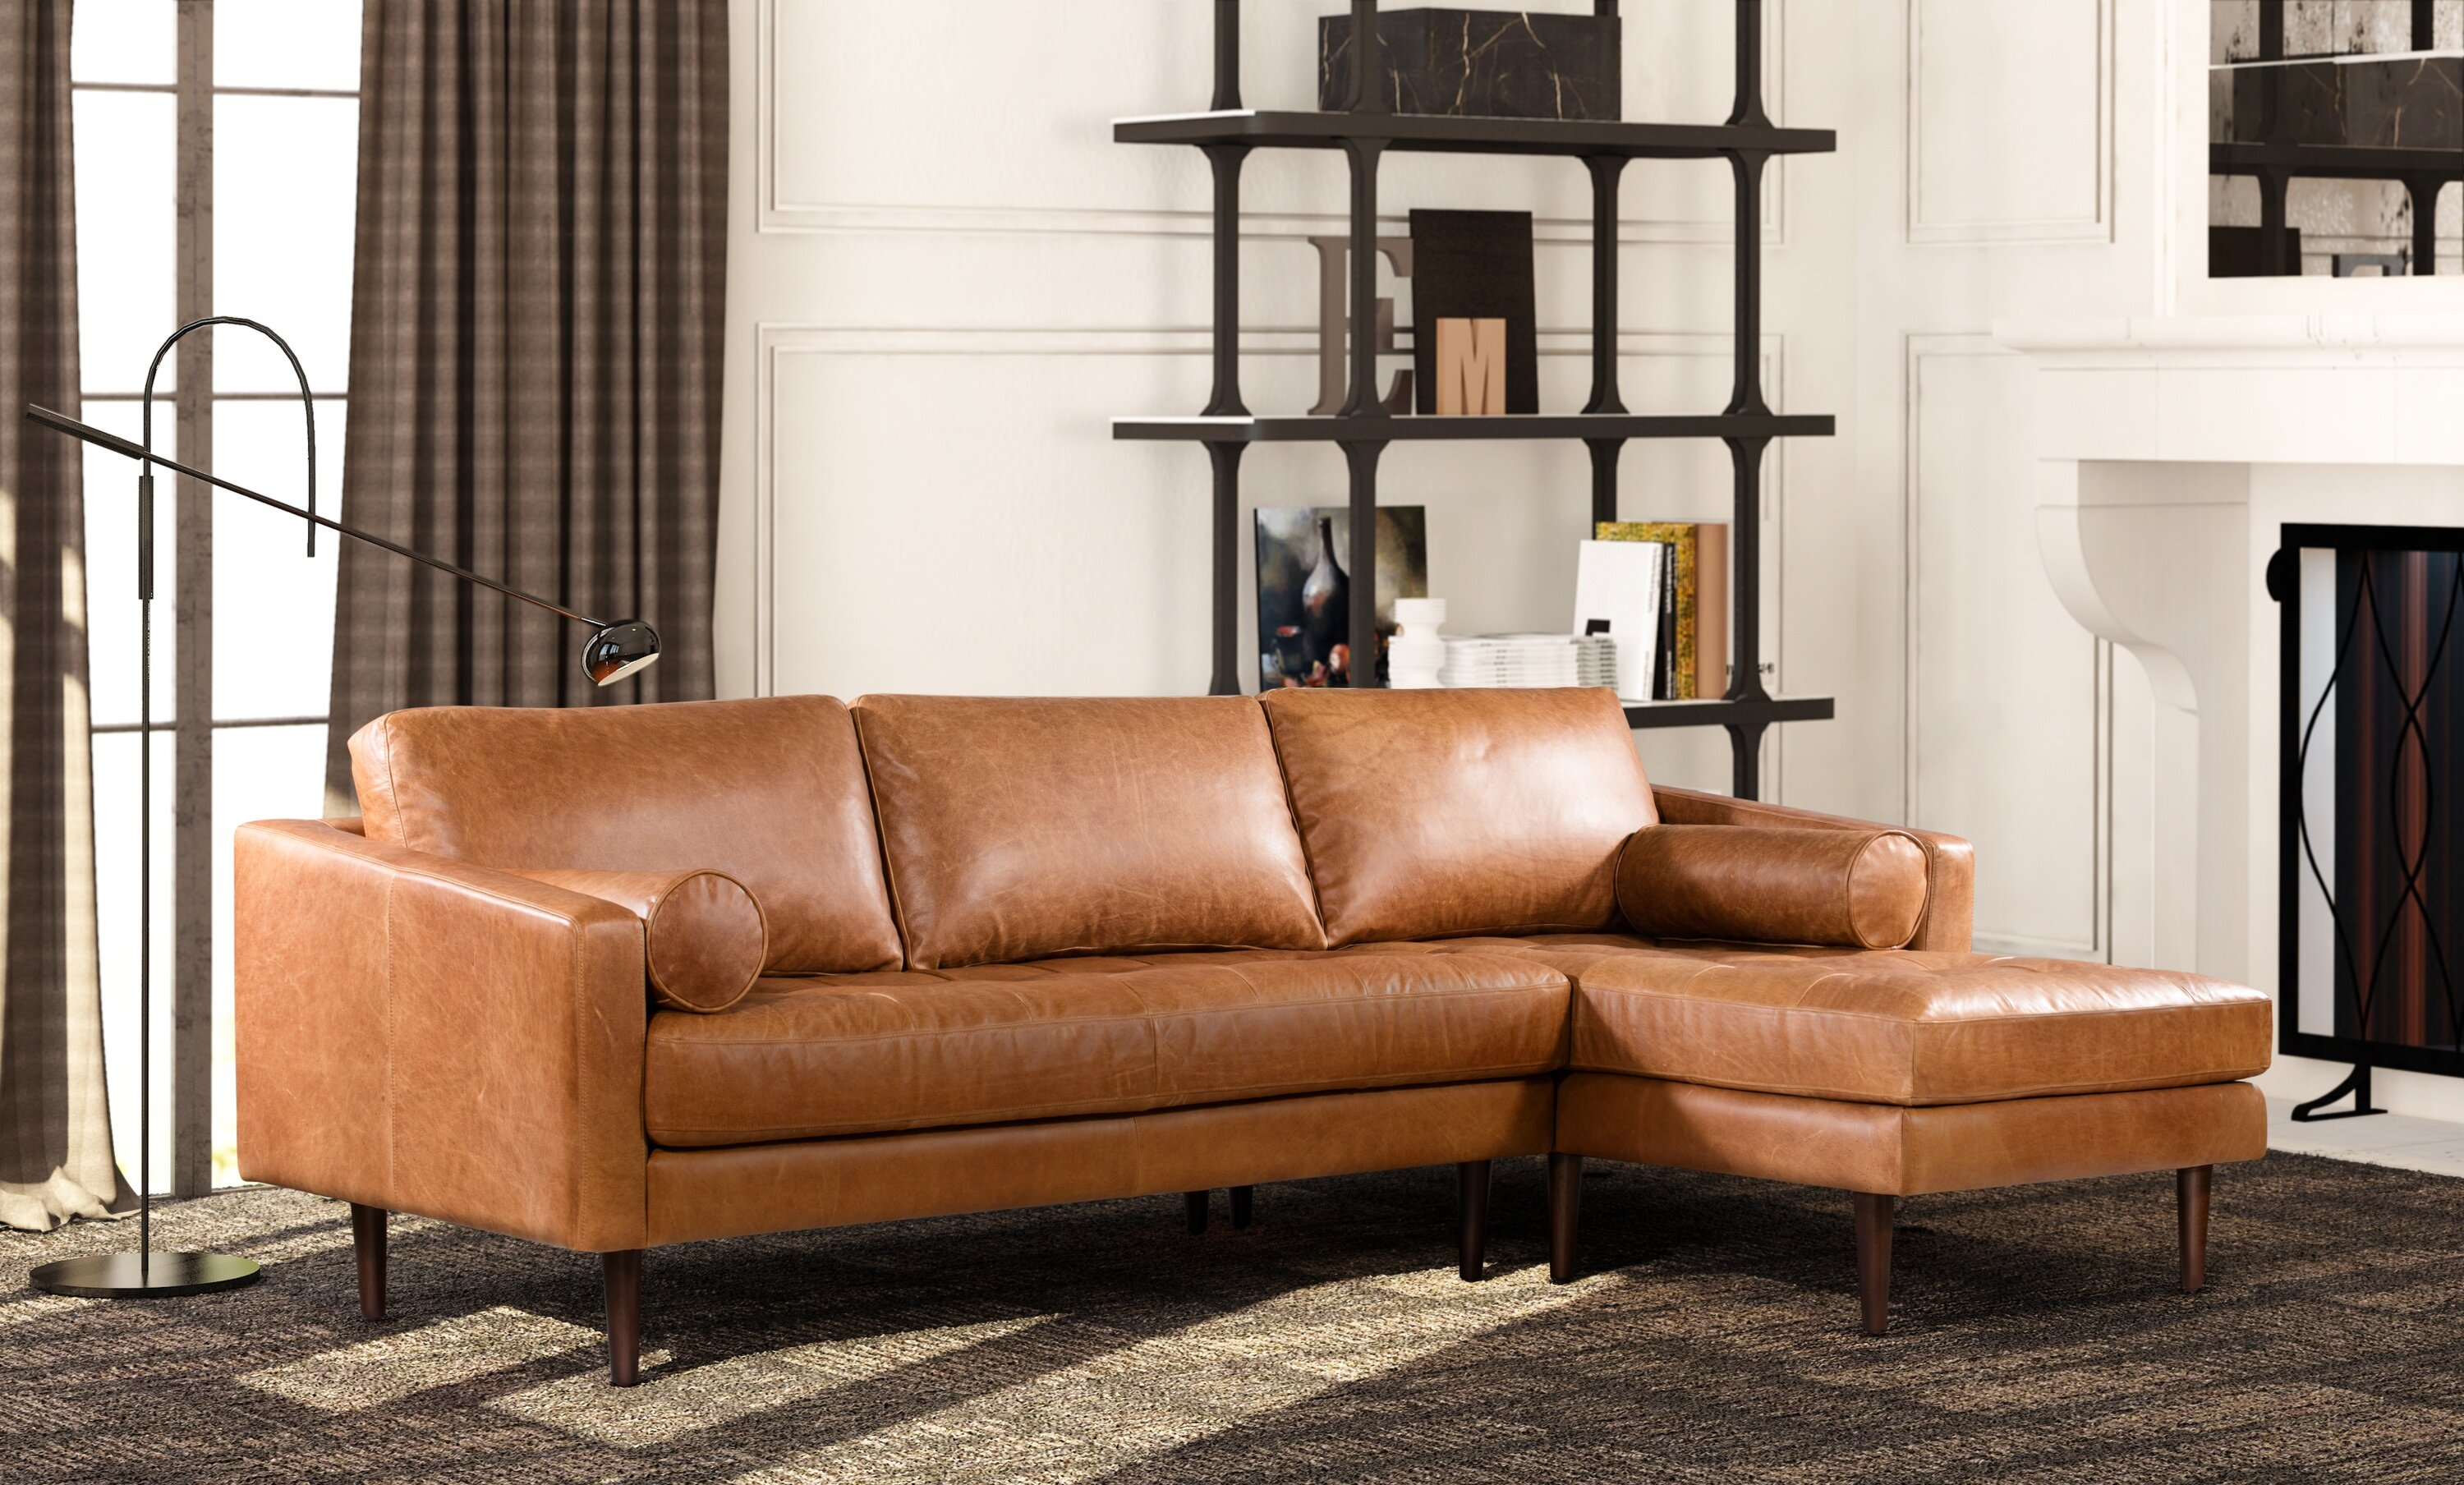 Superb Foundry Select Kate Leather Sectional Reviews Wayfair Uwap Interior Chair Design Uwaporg